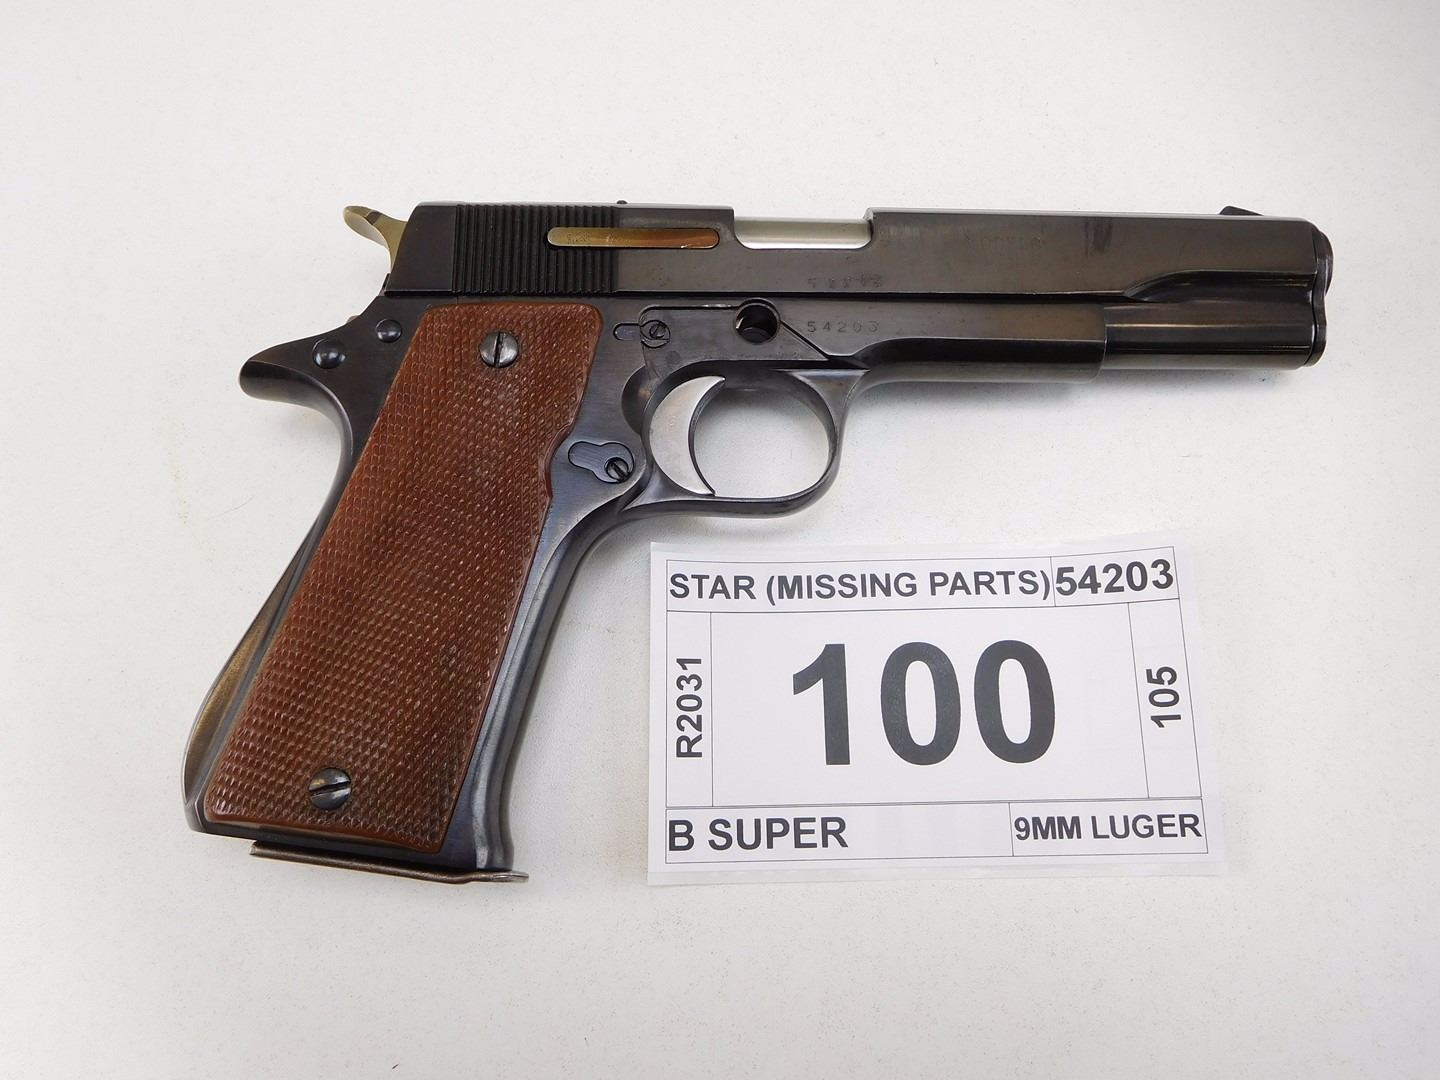 medium resolution of image 1 star model b super caliber 9mm luger